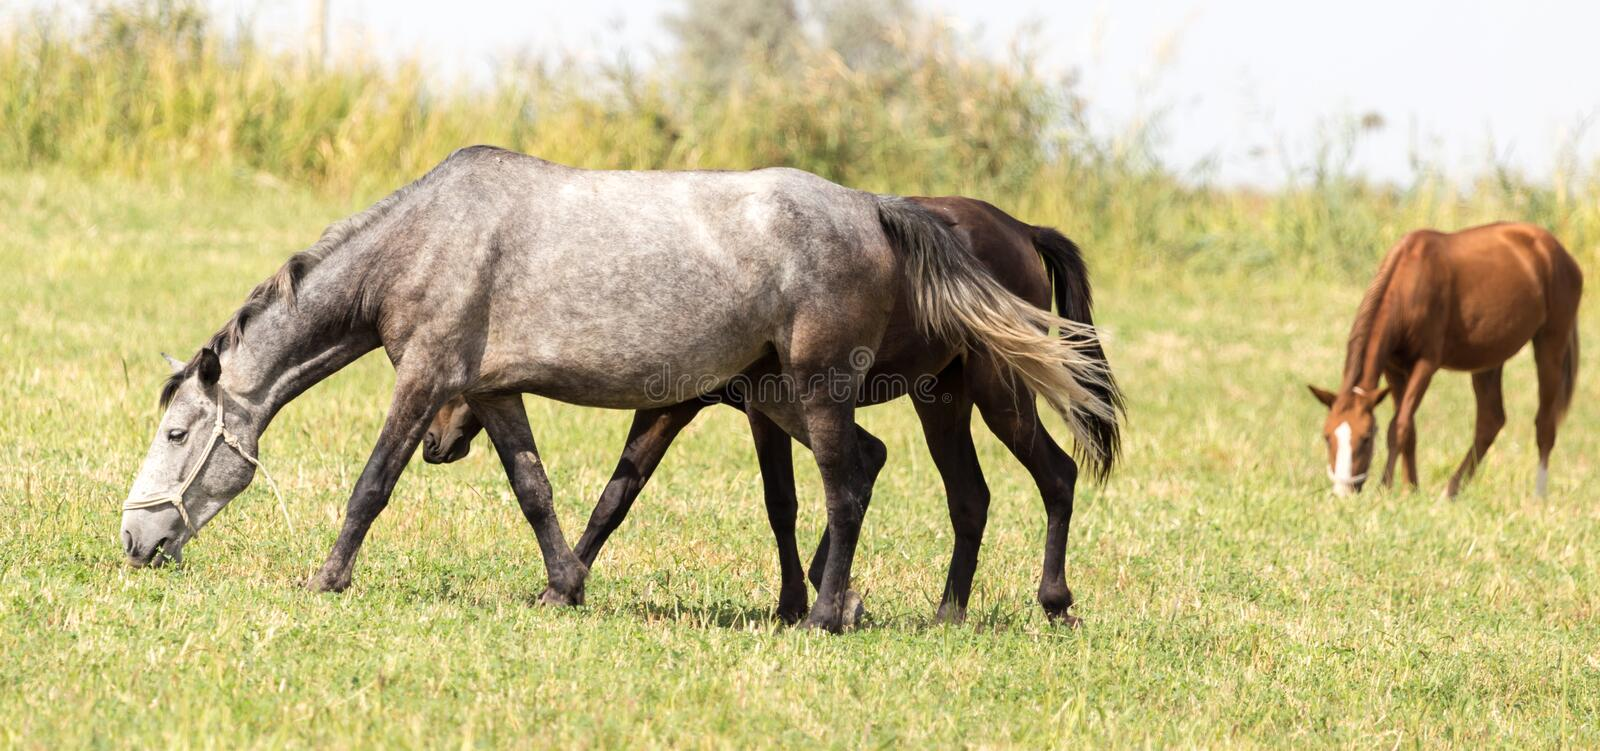 Three horses in a pasture in nature stock photos